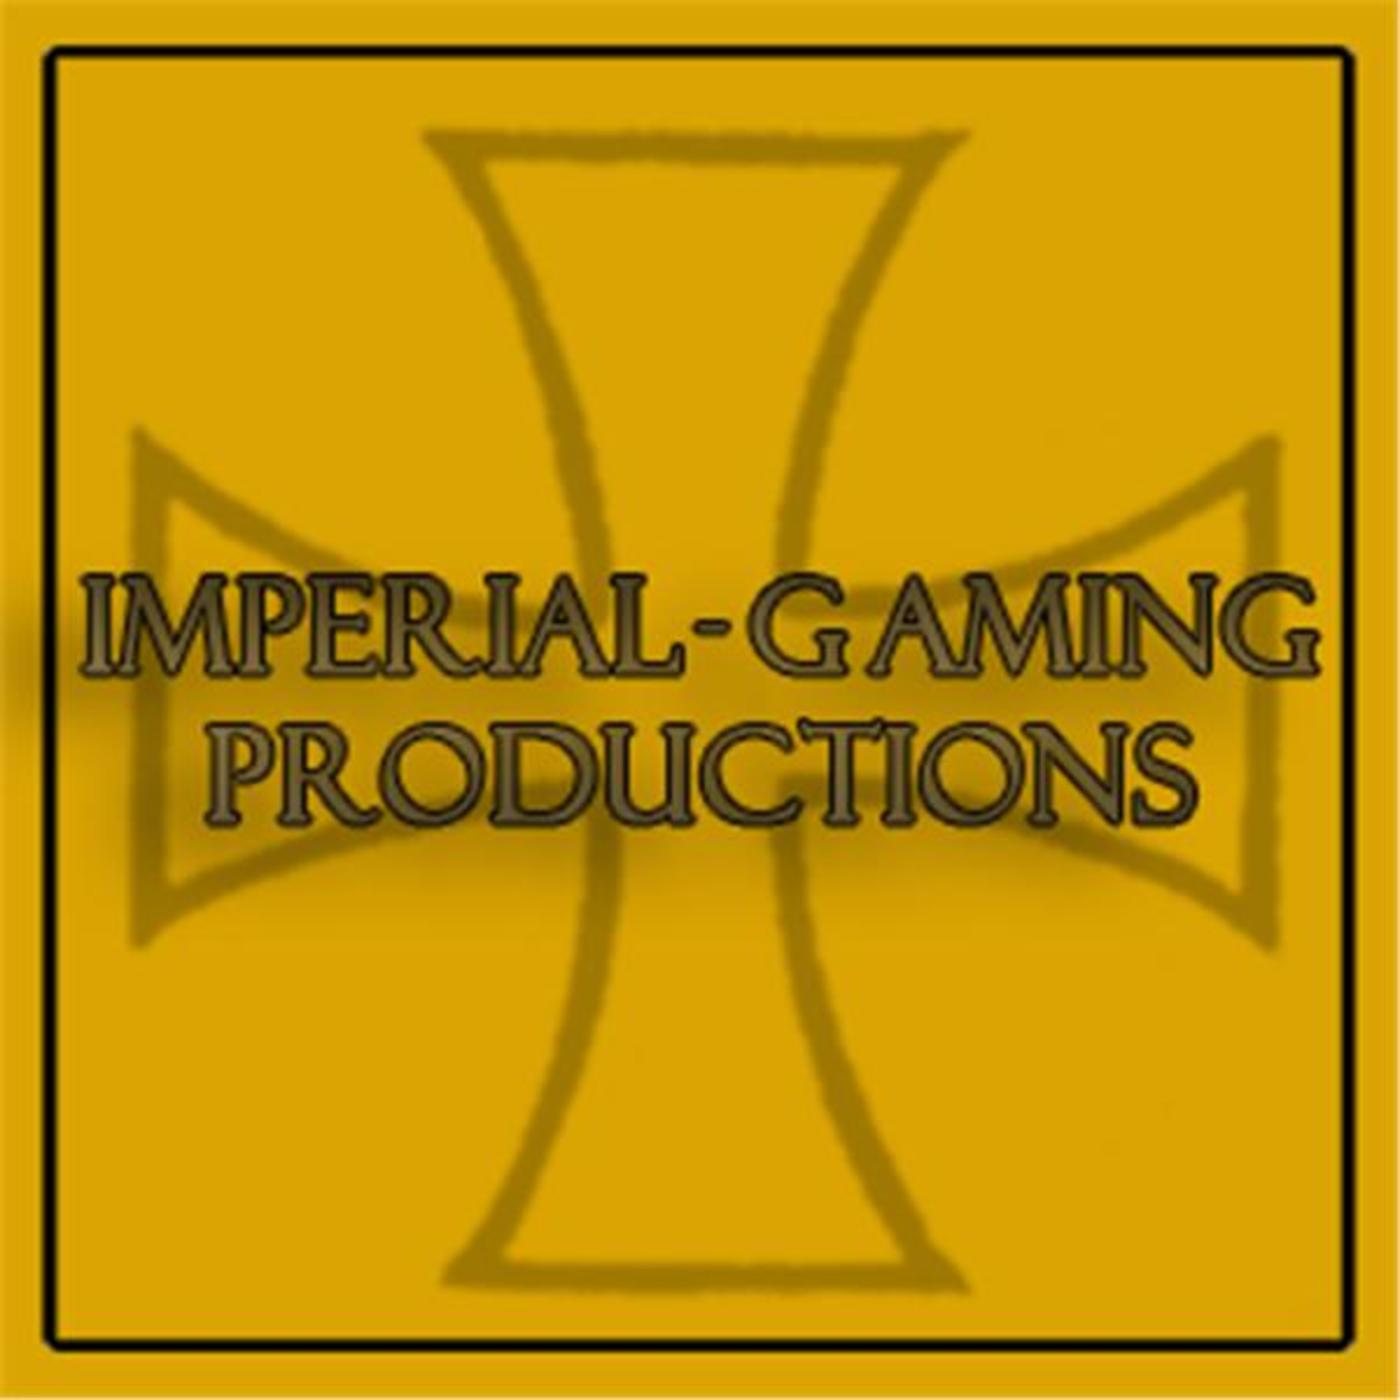 Imperial Gaming & Skeptic Conservative